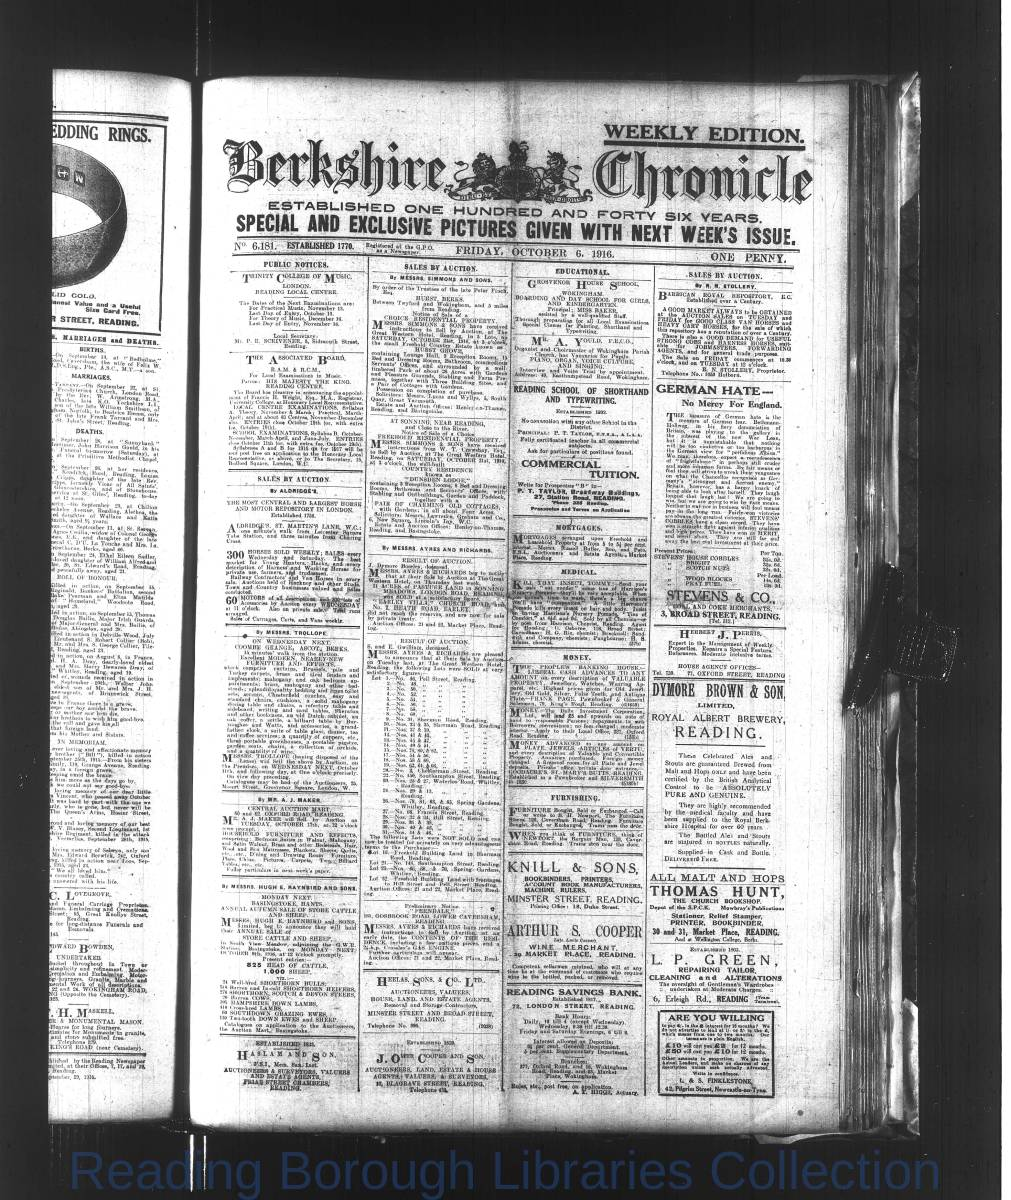 Berkshire Chronicle Reading_06-10-1916_00002.jpg